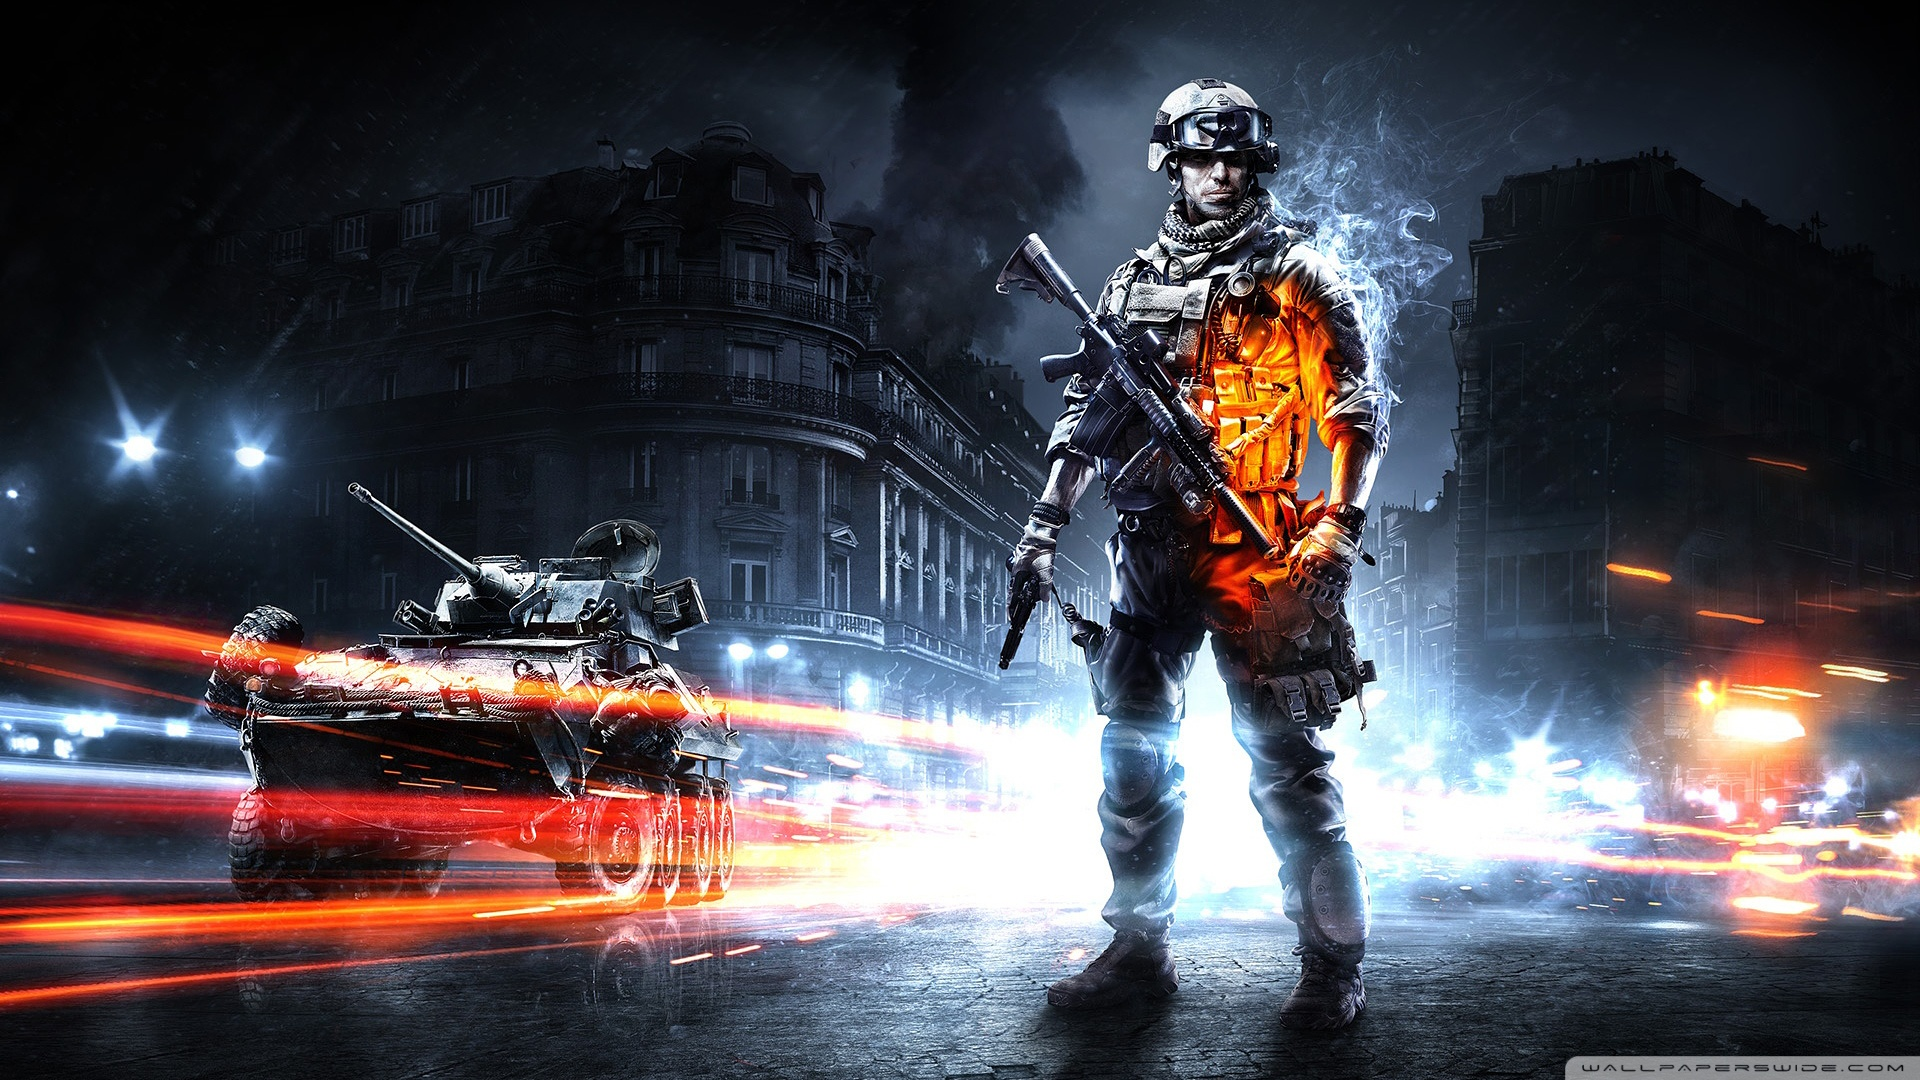 RSS feed Report content BF3 Amazing HD Wallpaper view original 1920x1080